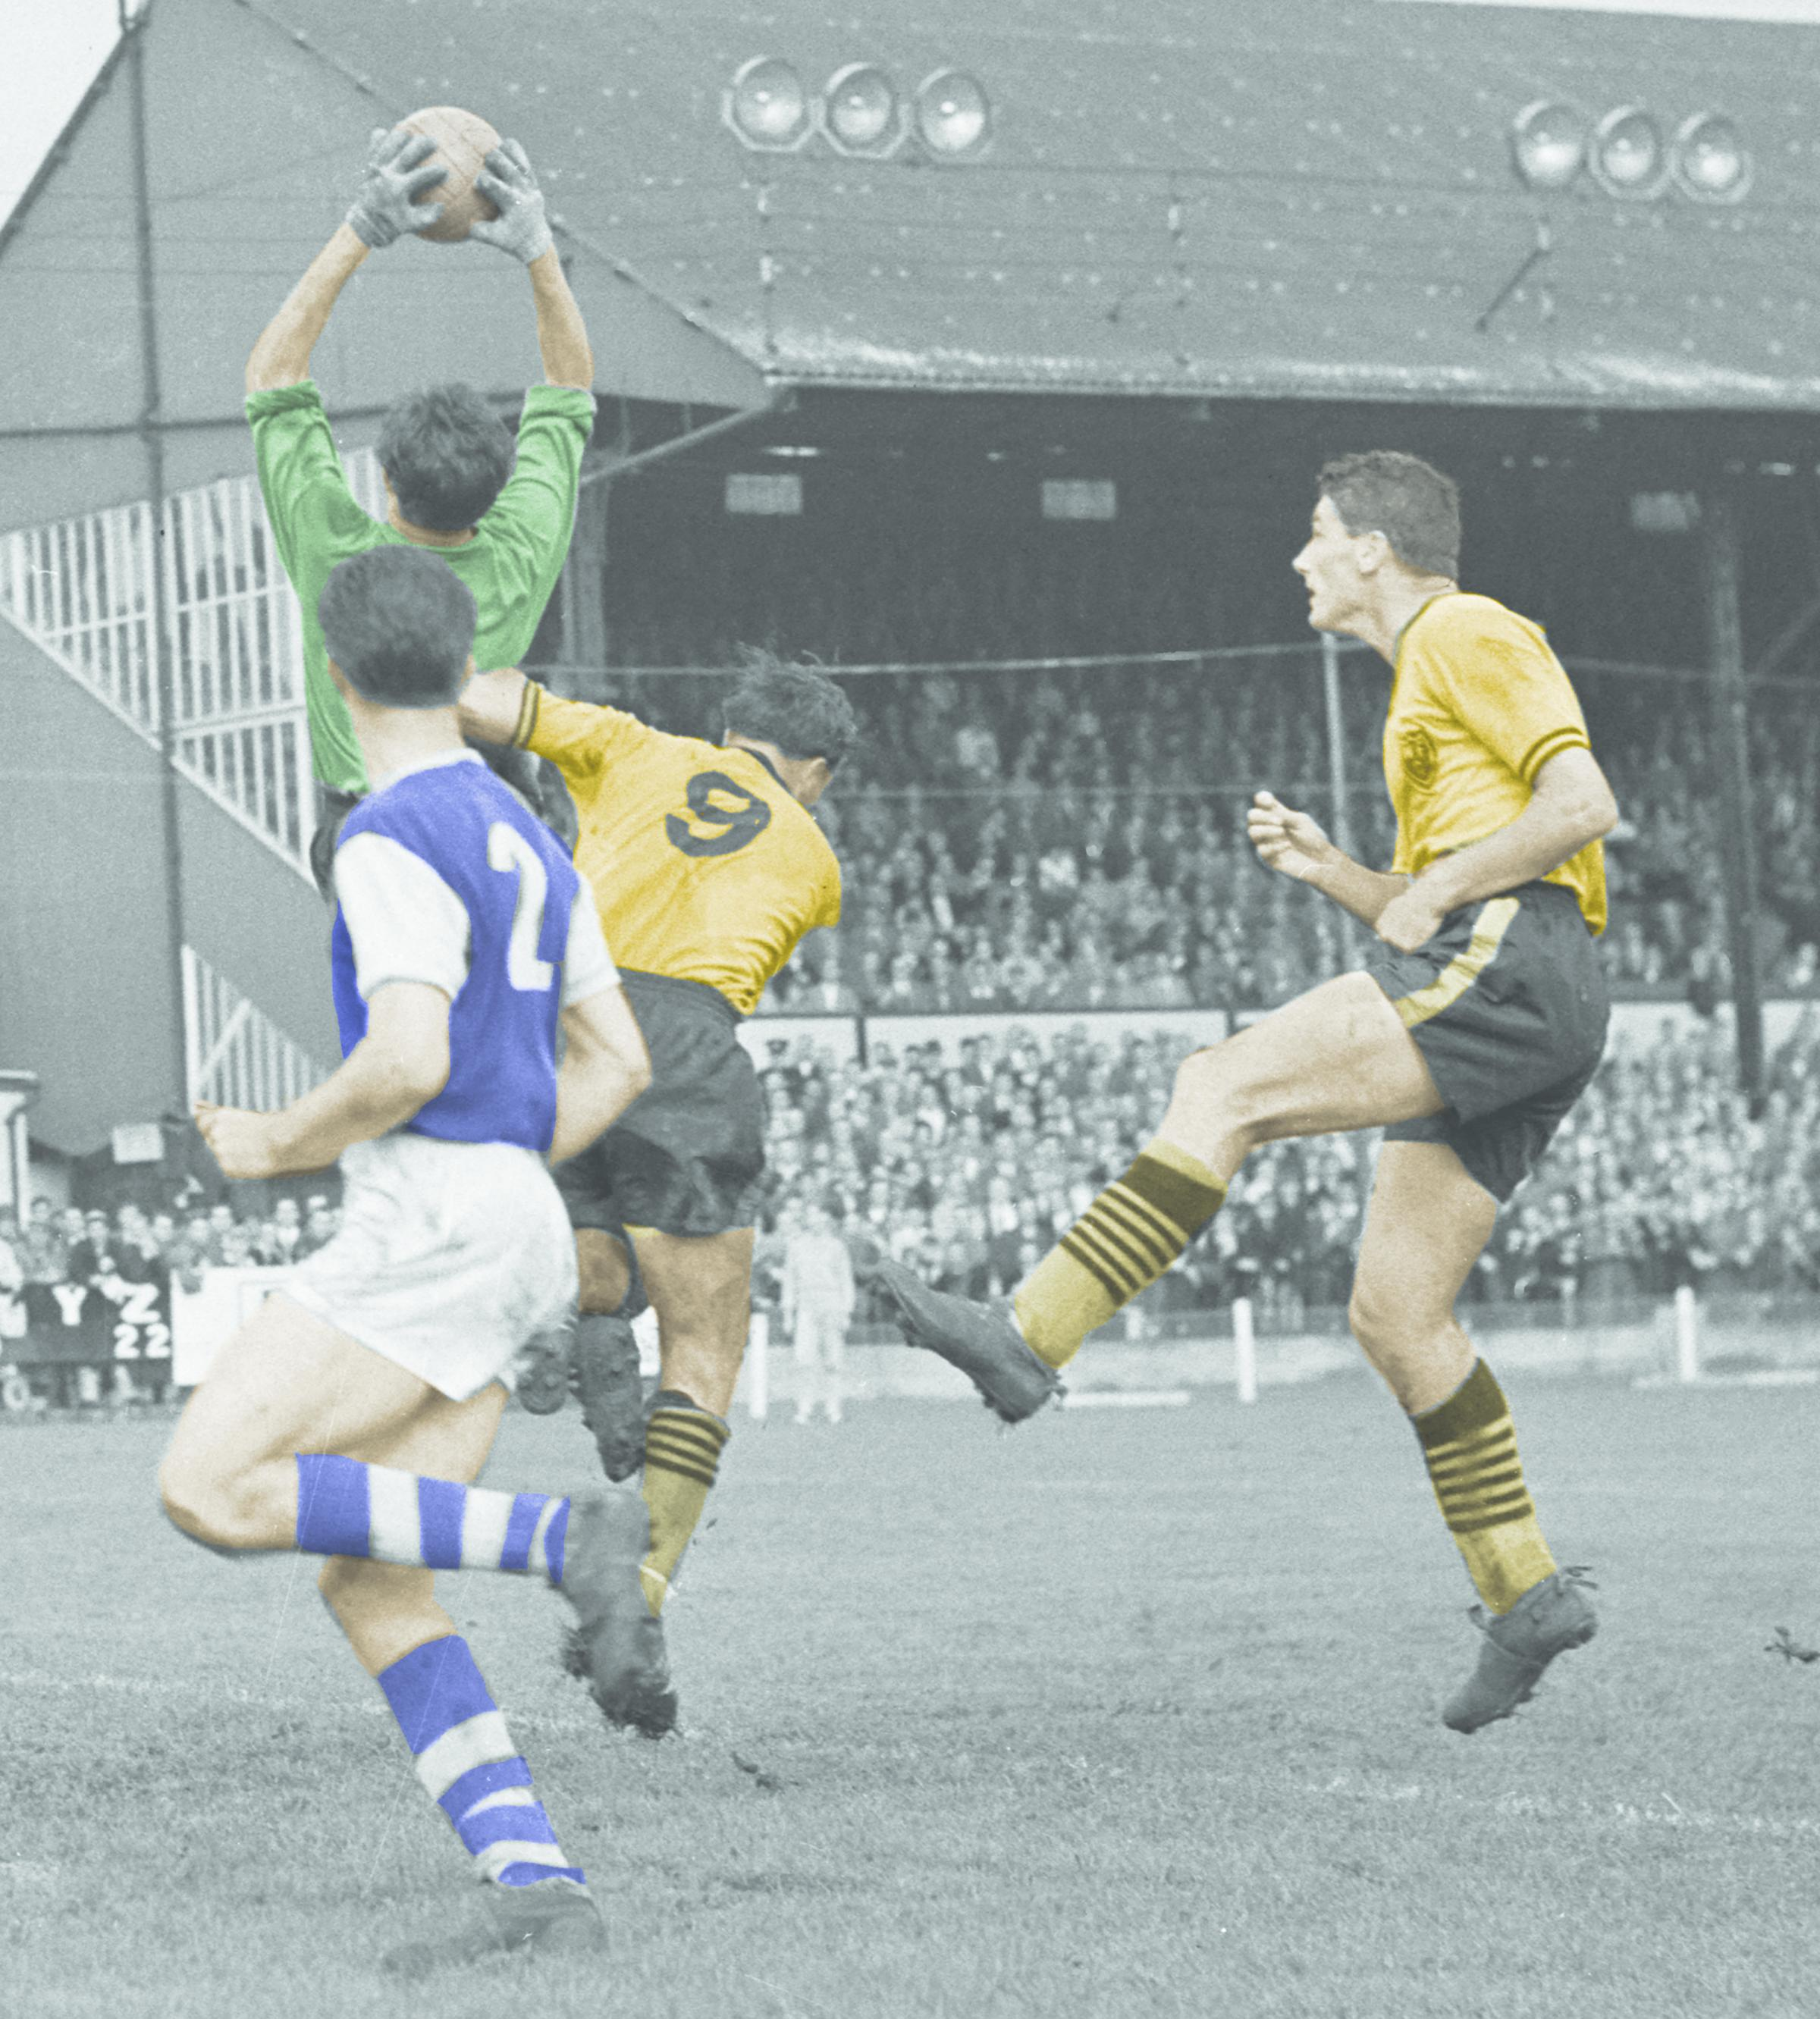 Memories of when Watford changed kit colour to gold and black